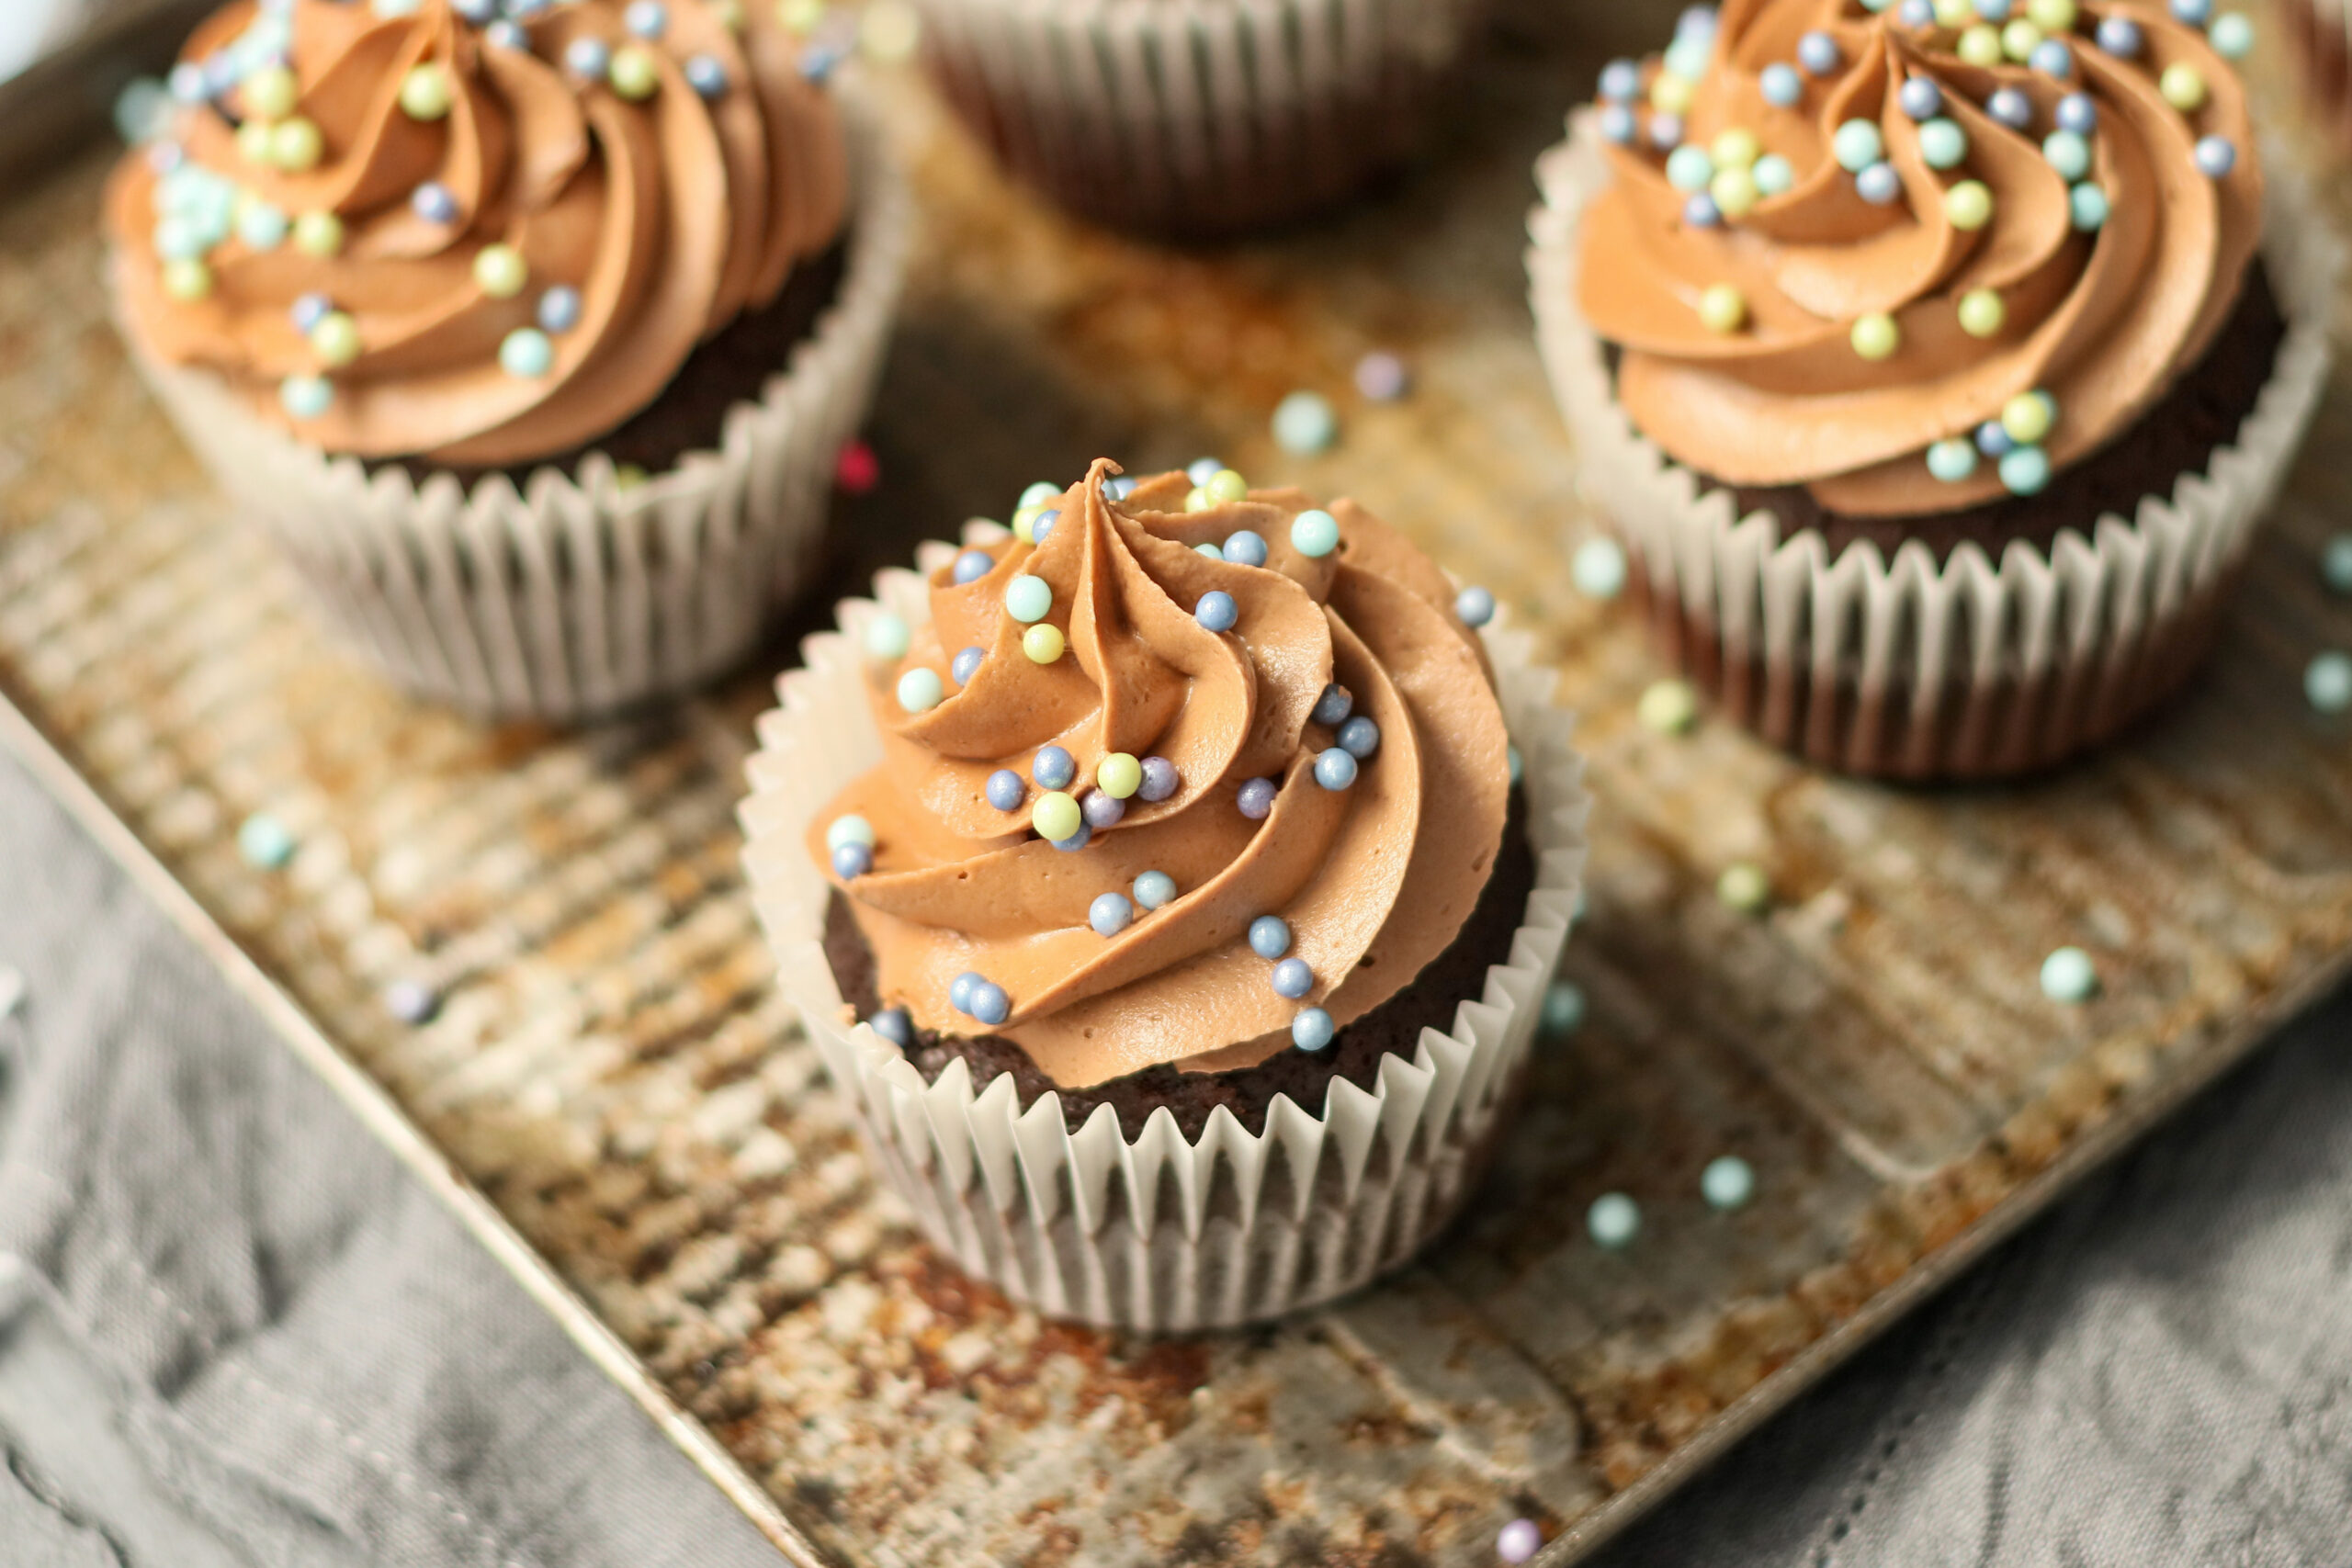 Chocolate cupcakes - food photography and styling by Melanie May